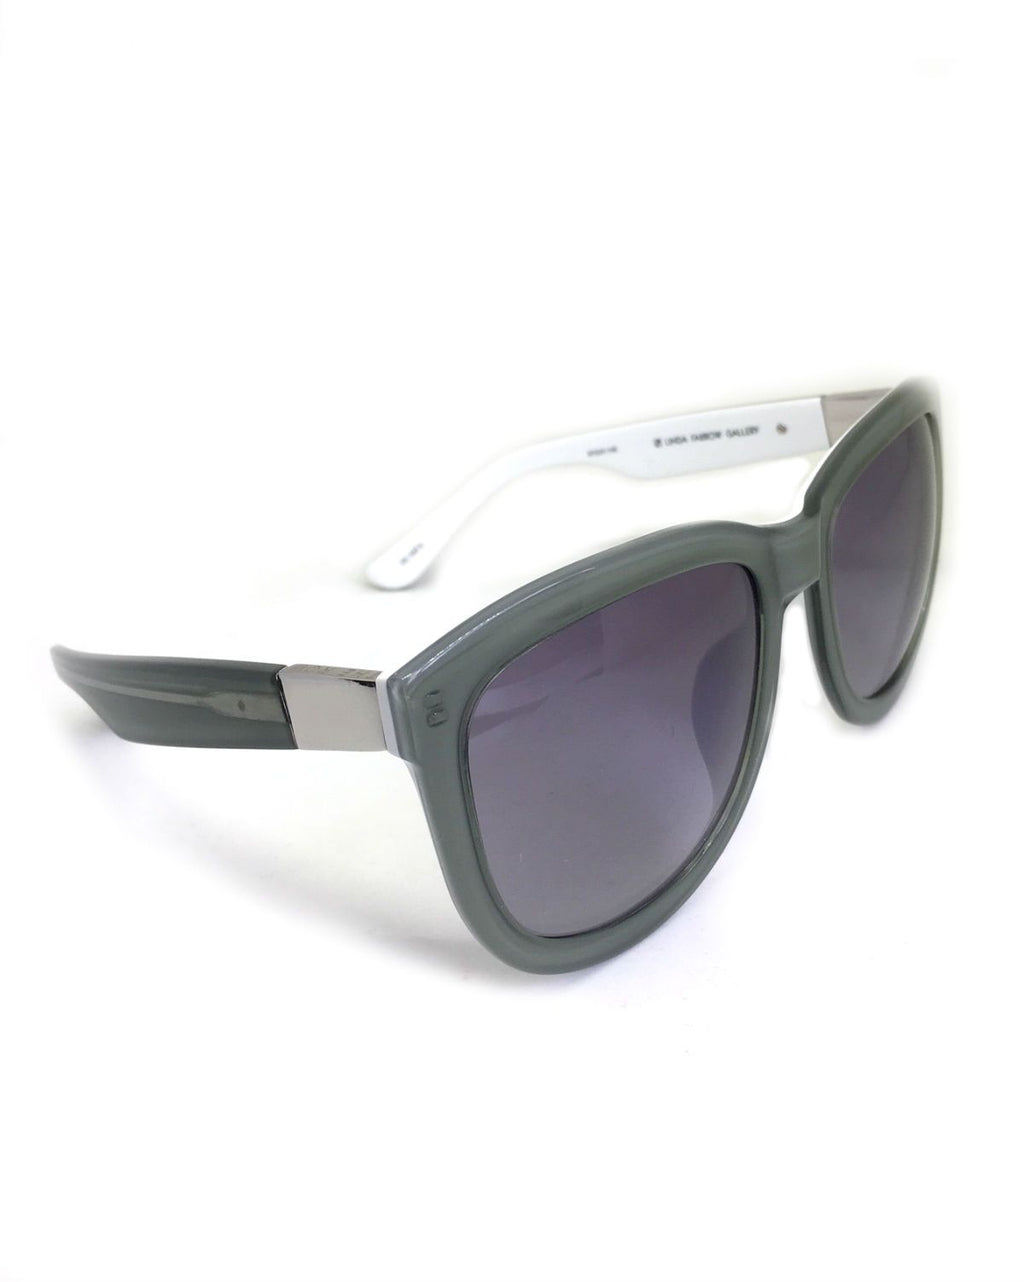 LINDA FARROW TEMPLE D-FRAME SUNGLASSES